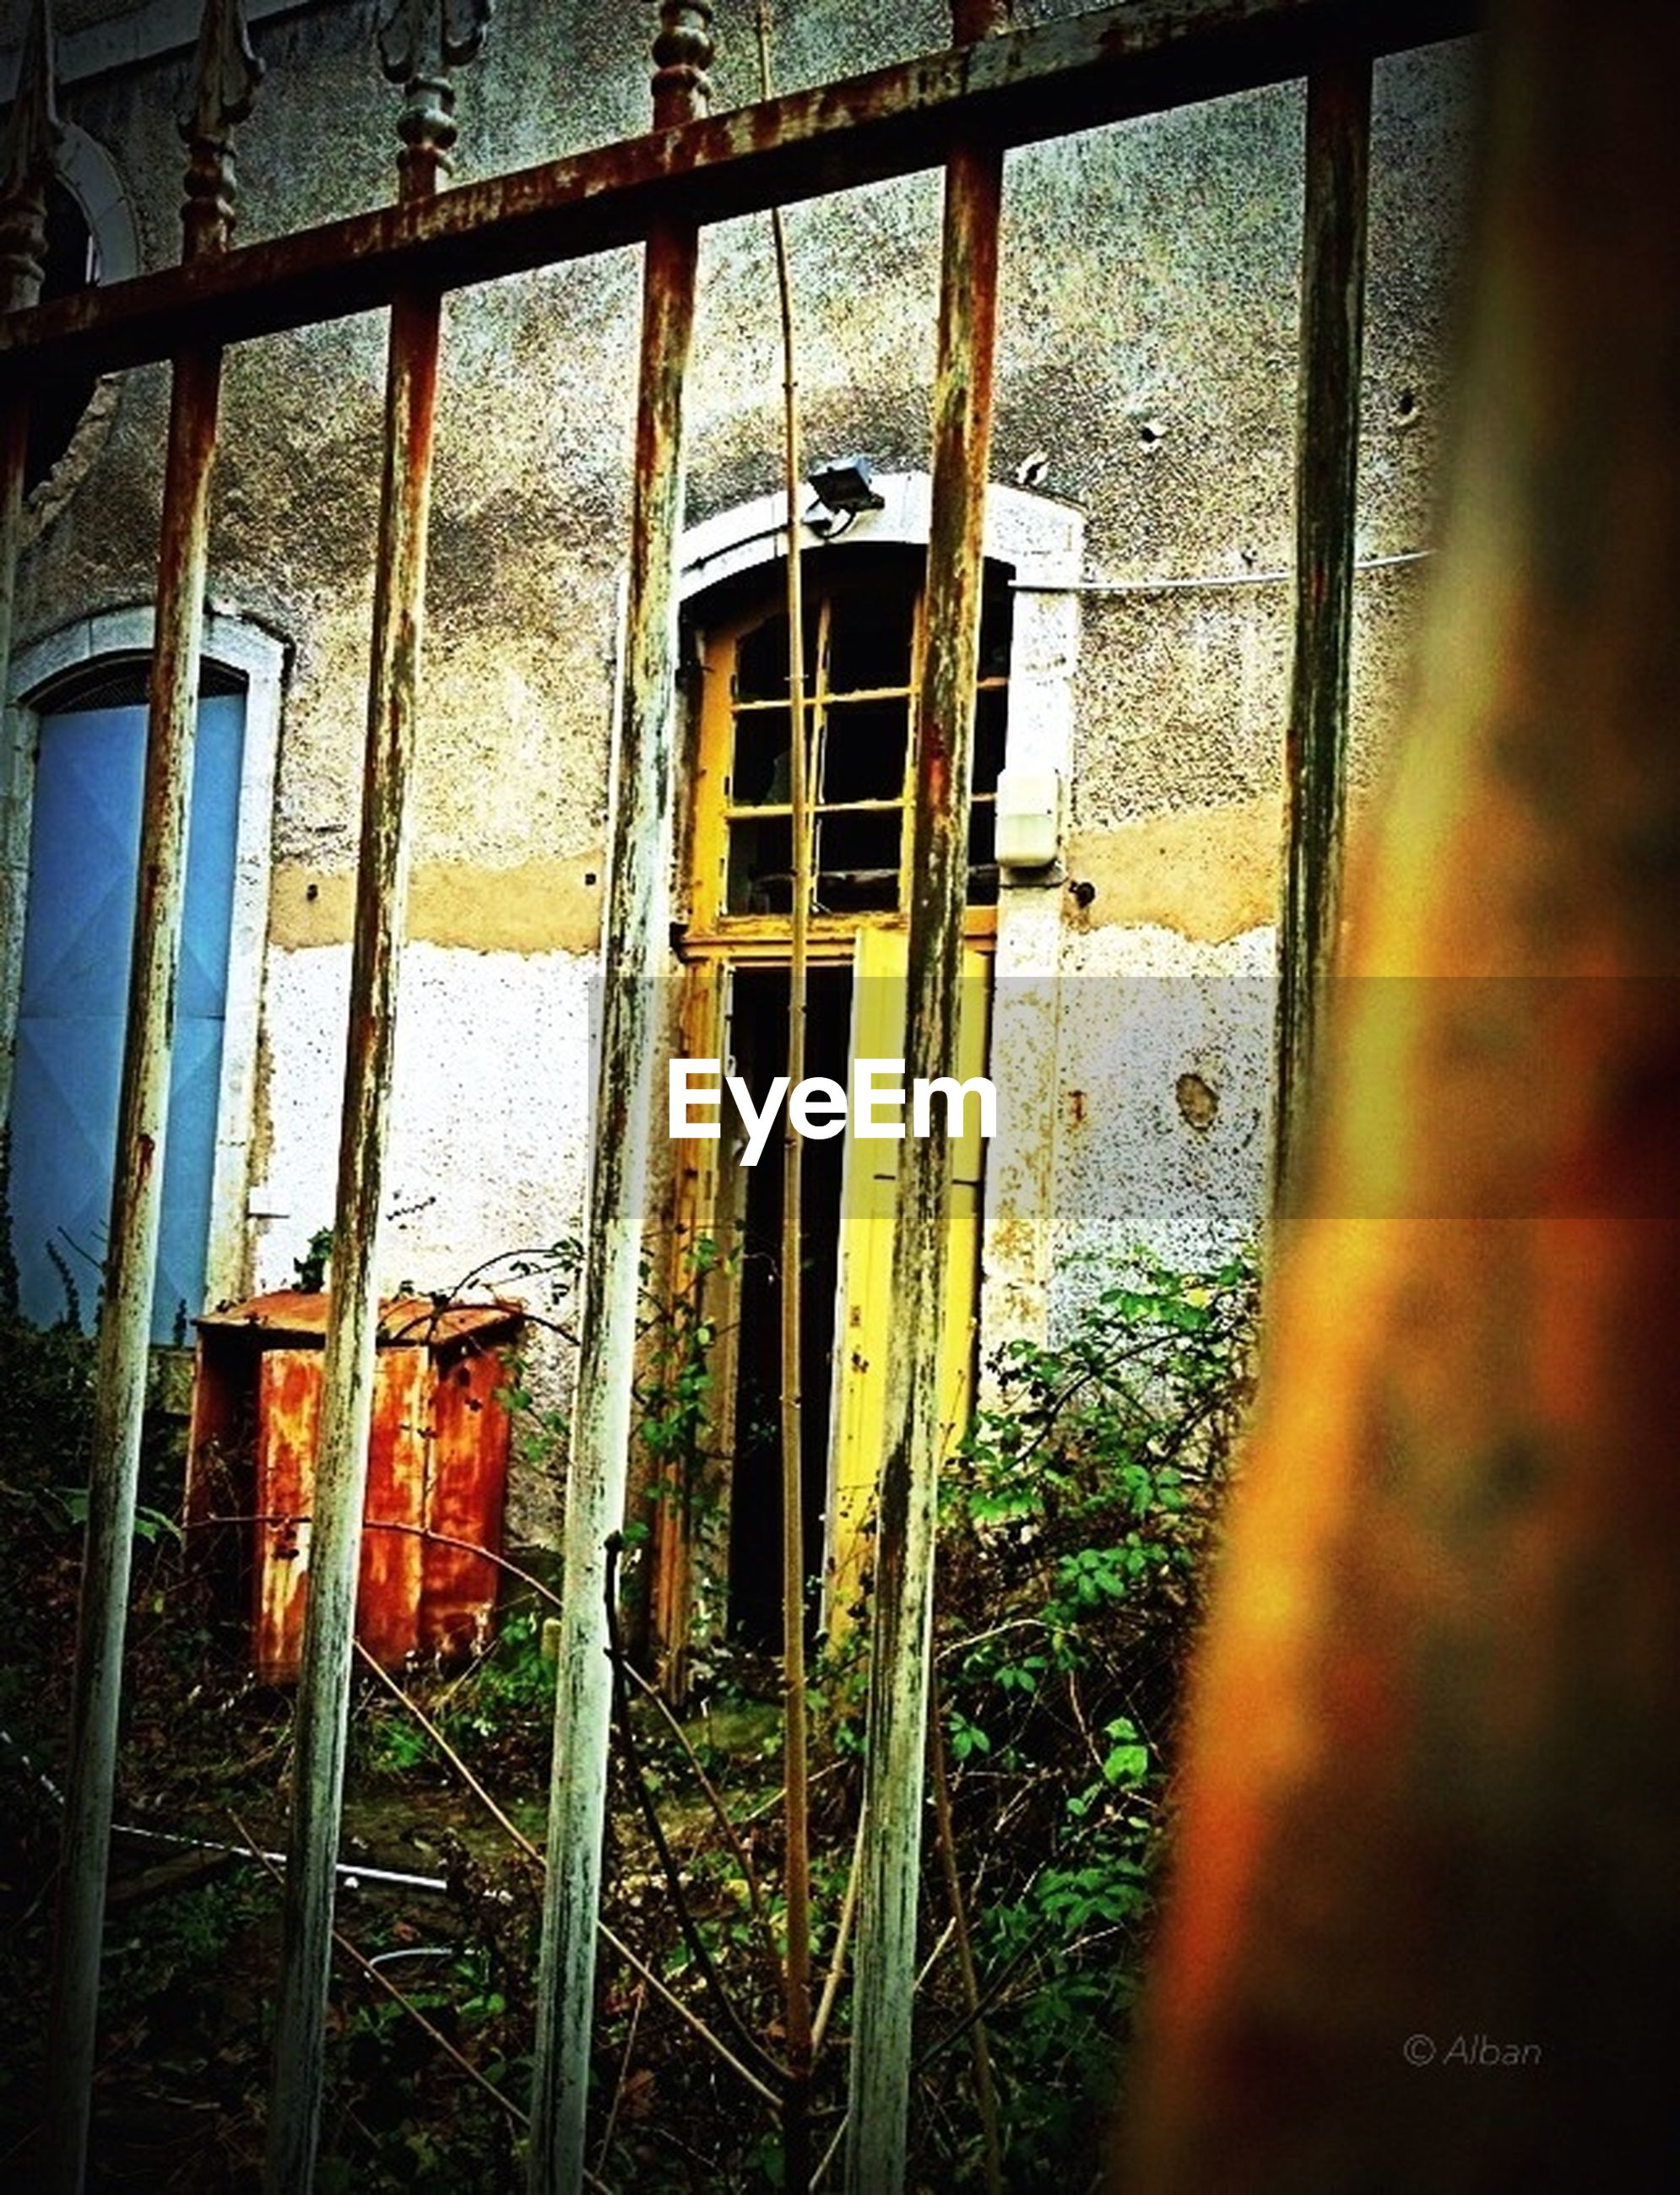 abandoned, obsolete, damaged, run-down, deterioration, built structure, old, architecture, window, building exterior, weathered, bad condition, rusty, house, metal, broken, day, no people, ruined, destruction